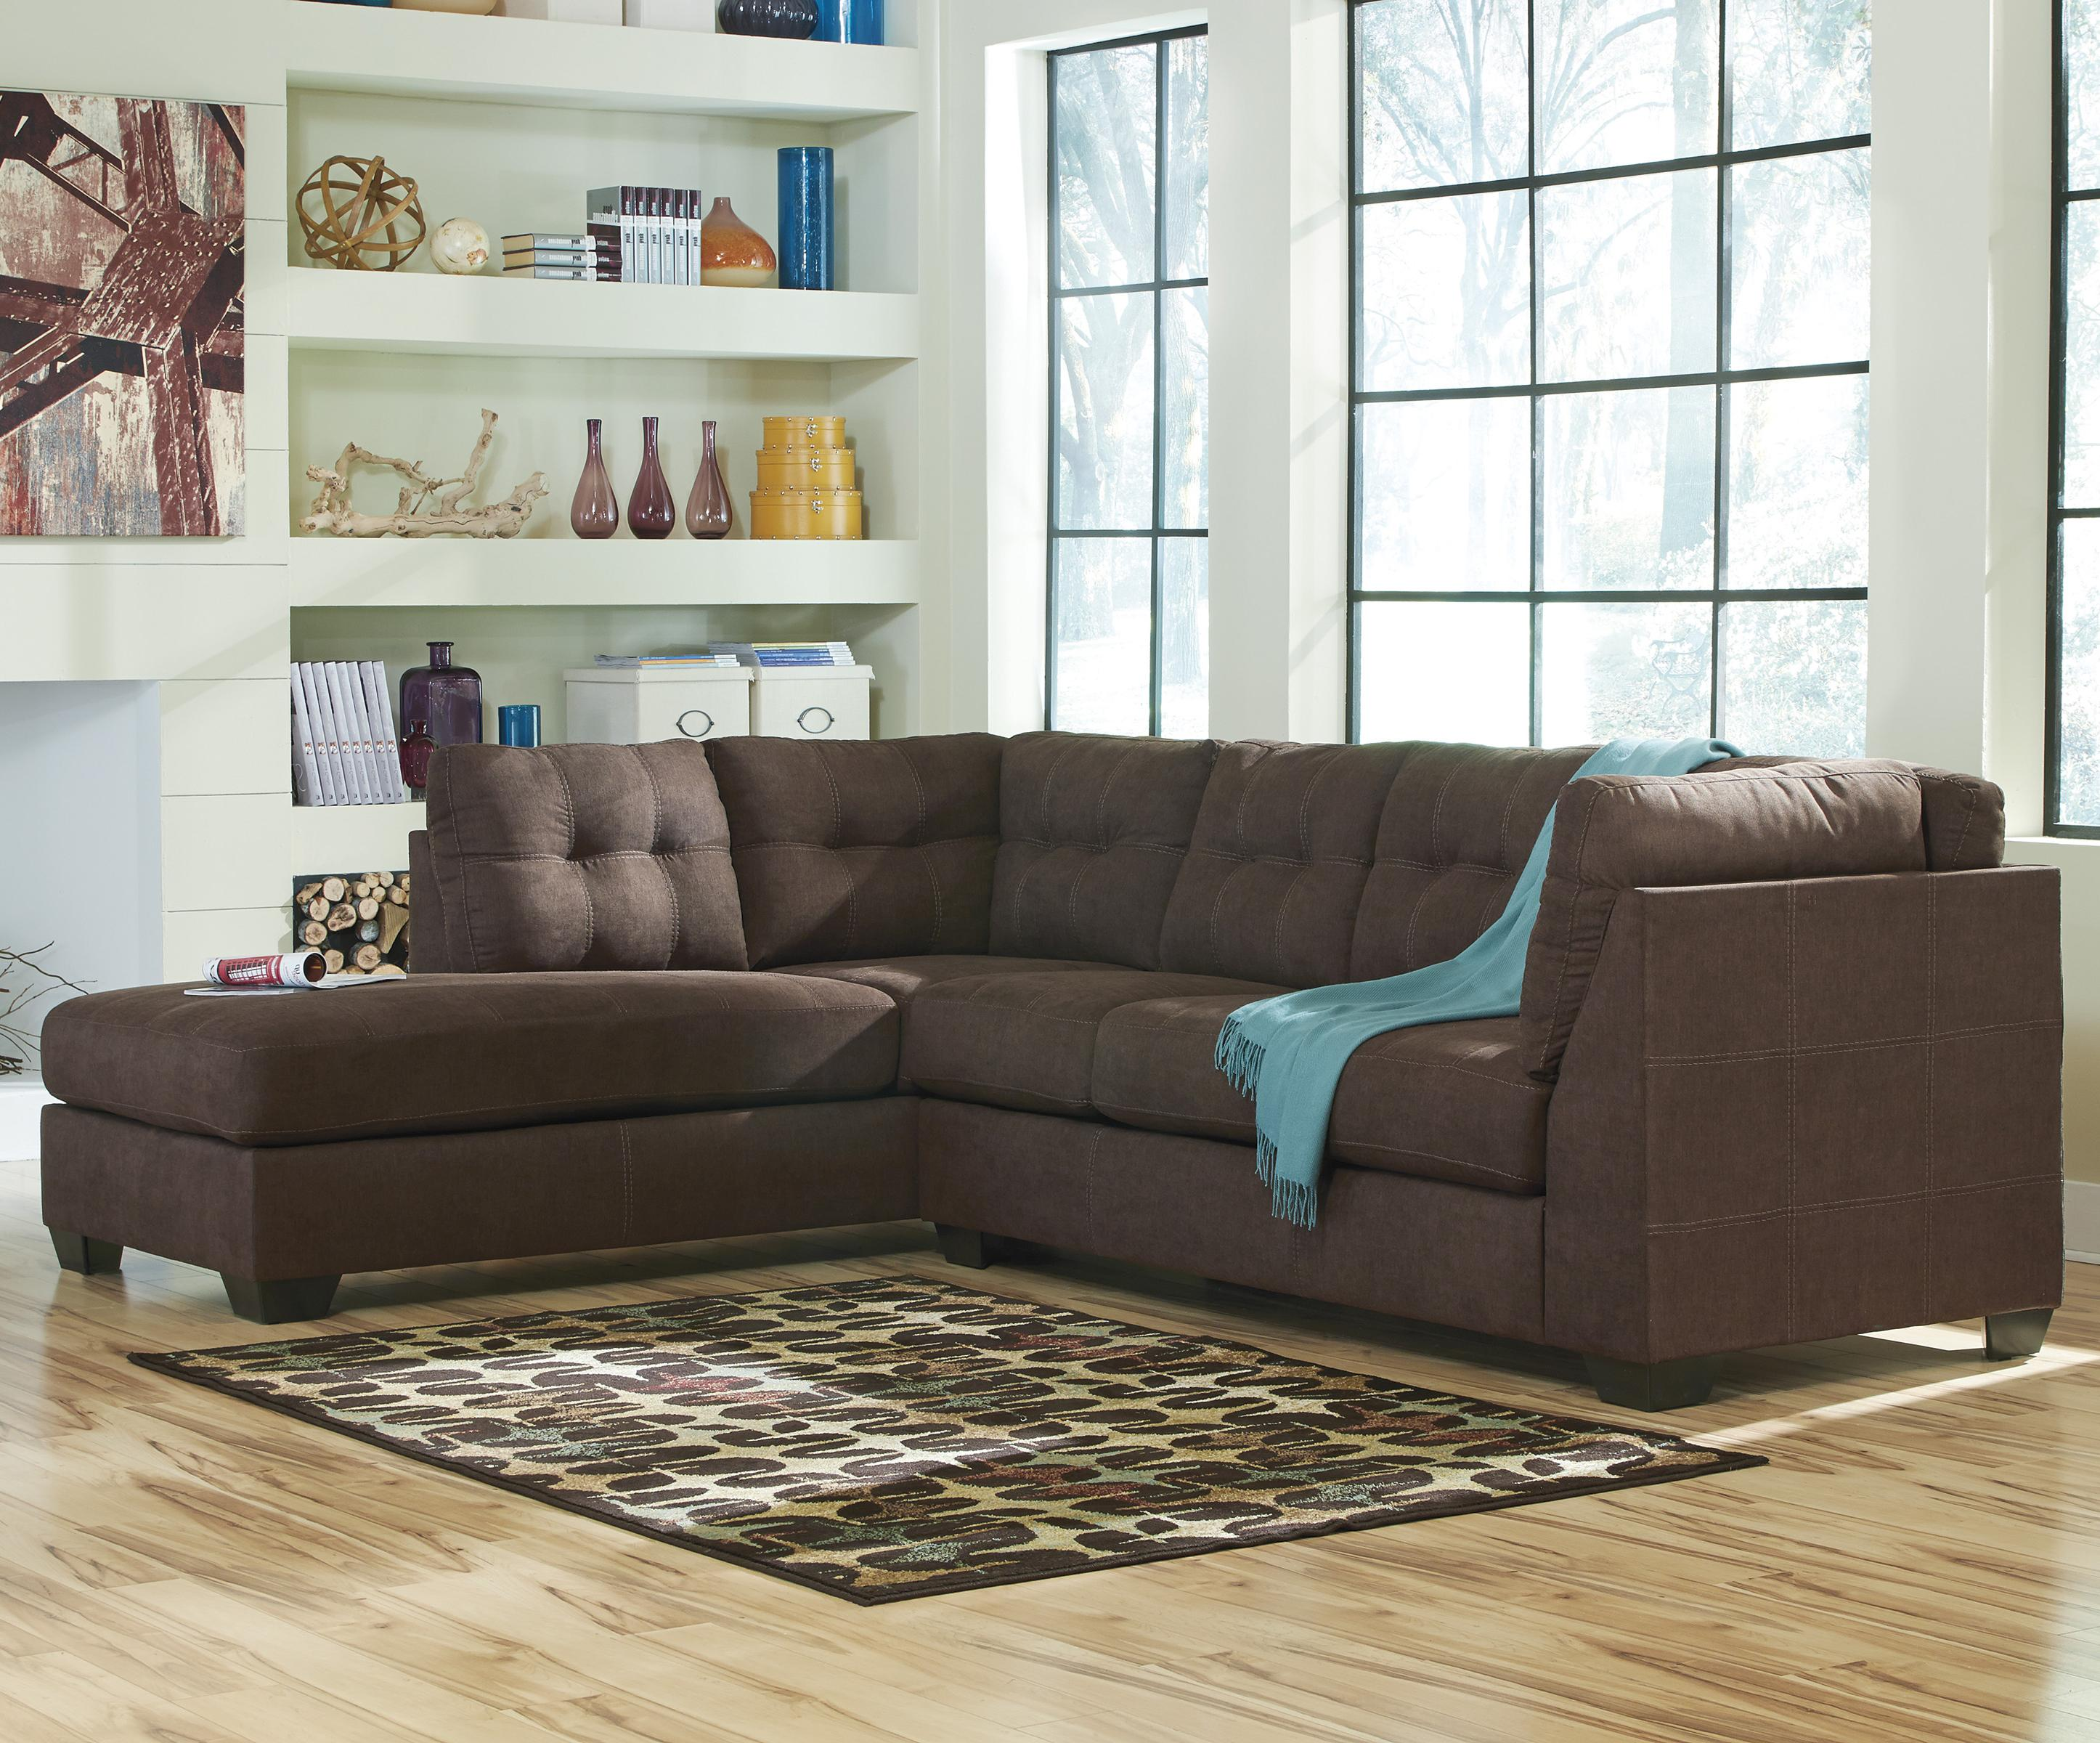 Benchcraft By Ashley Maier Walnut 2 Piece Sectional With